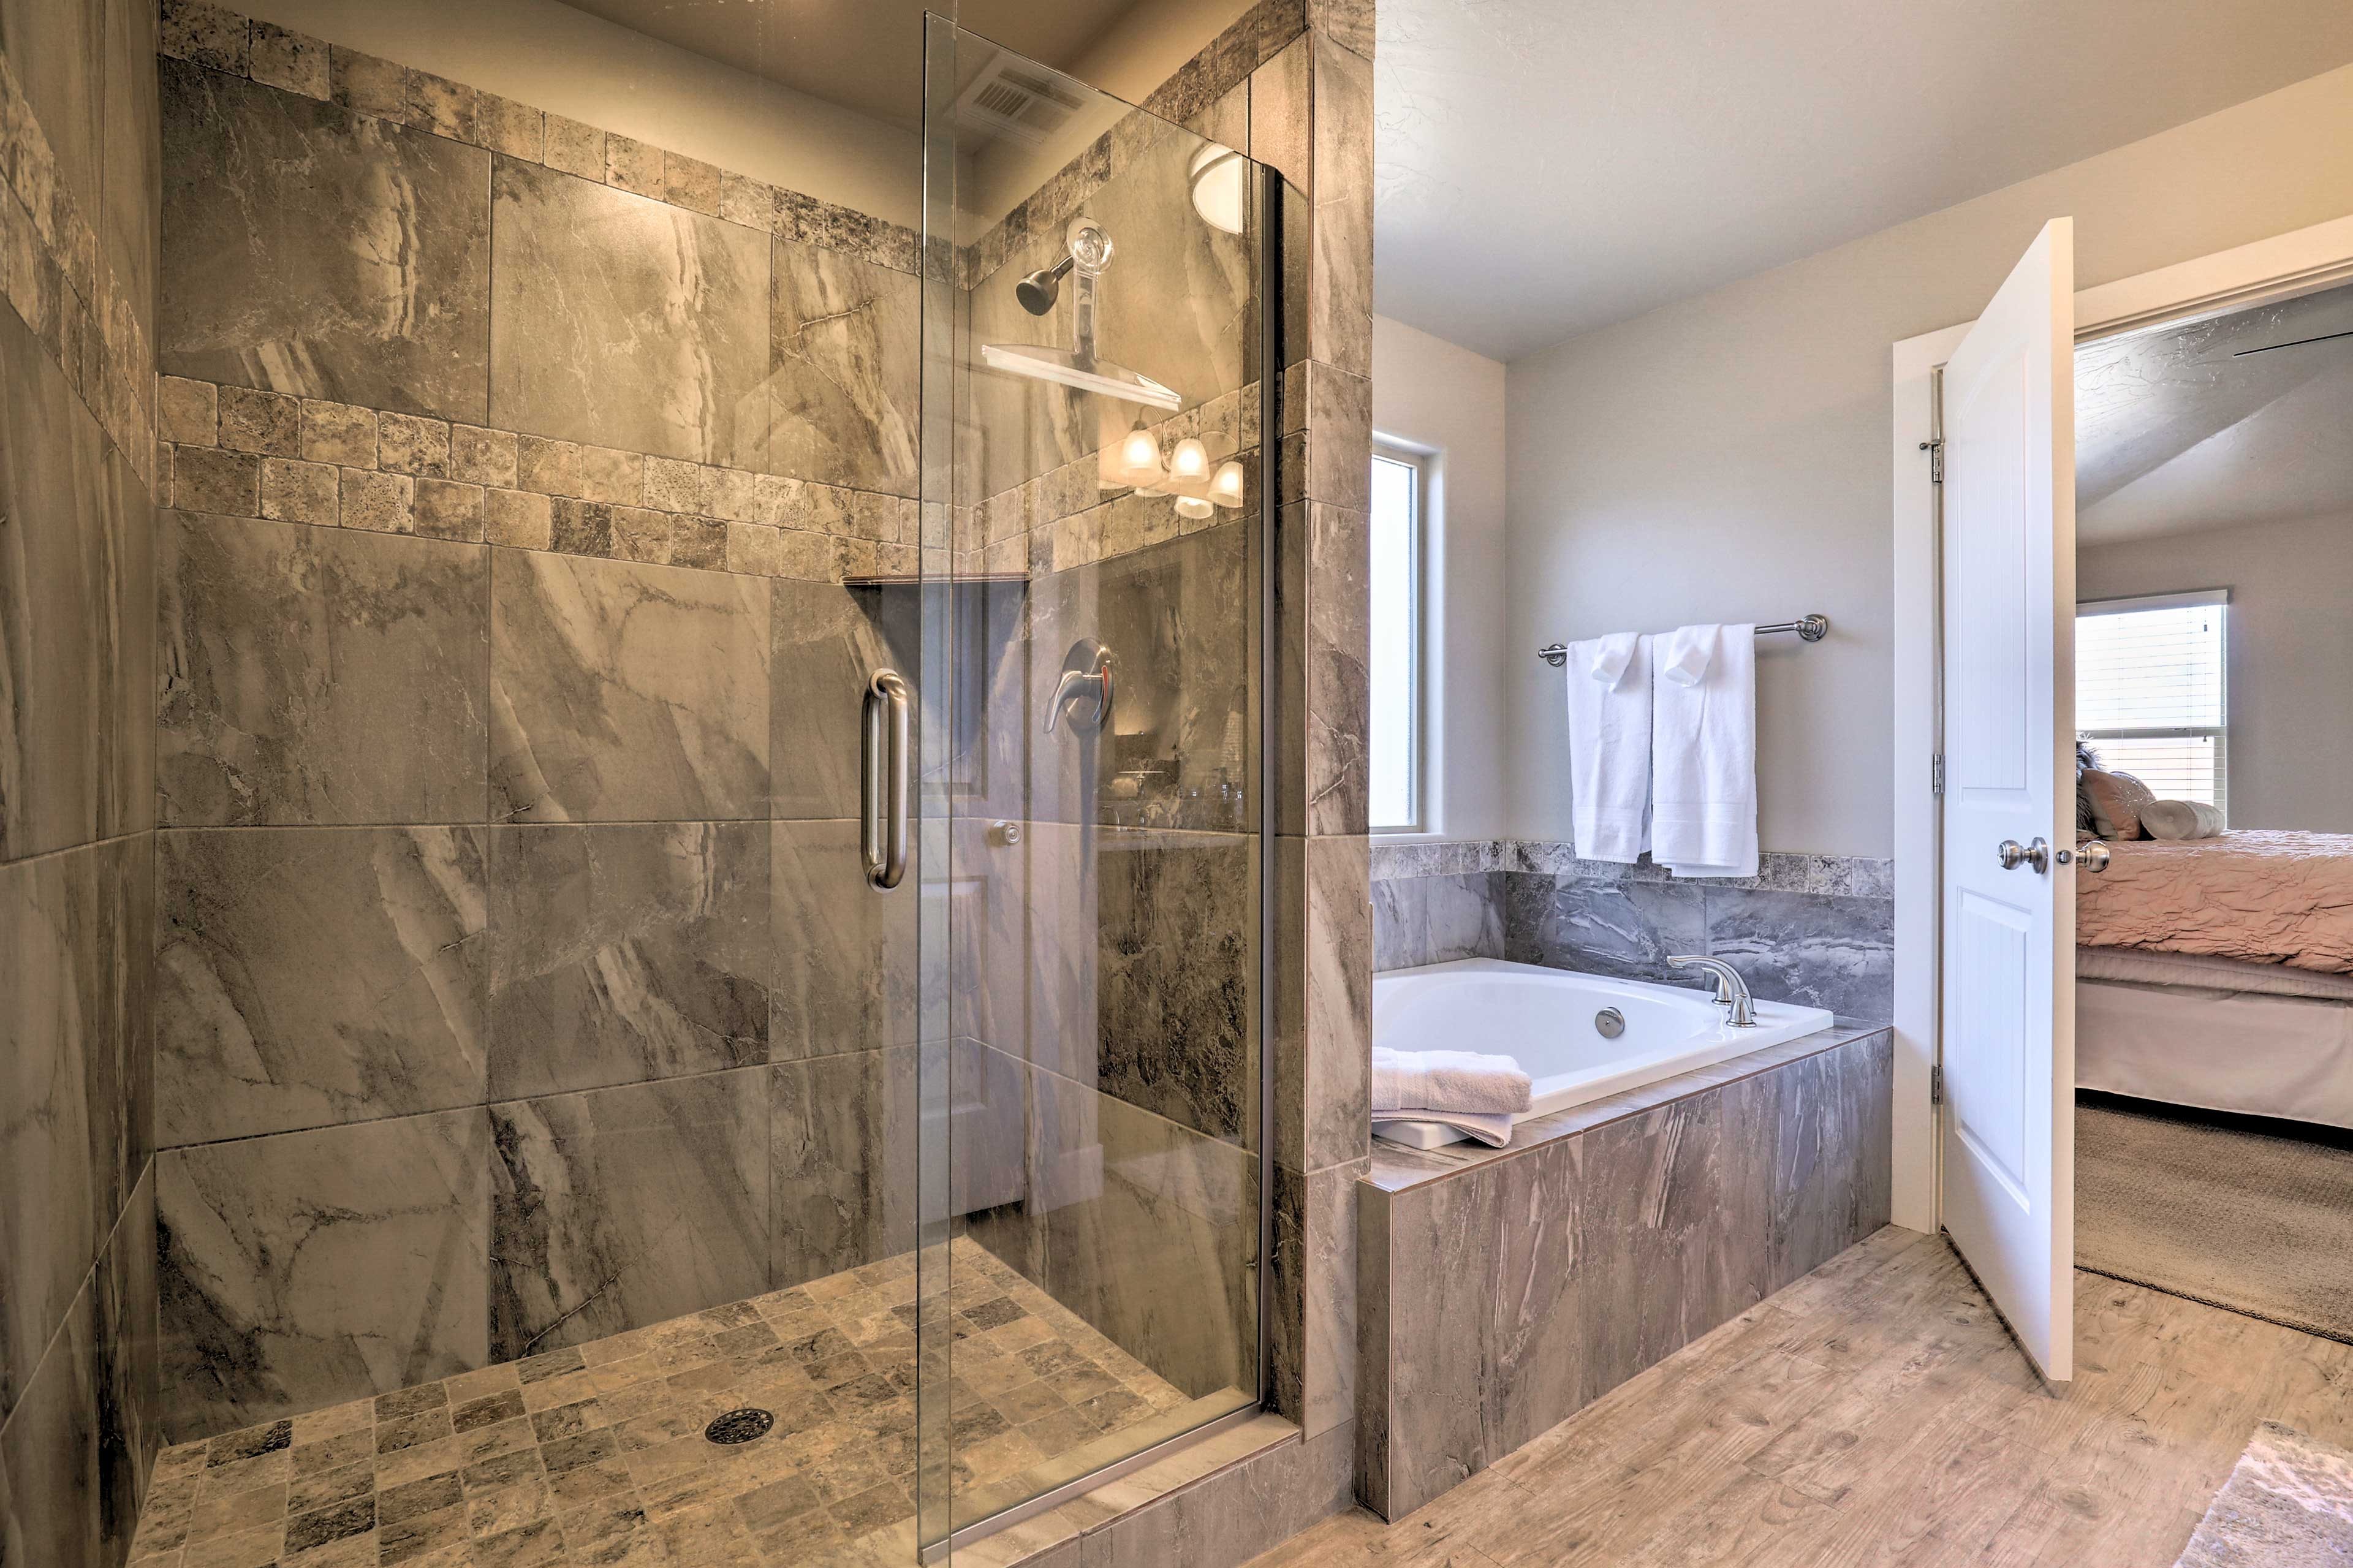 The en-suite bath features a tub and luxurious walk-in shower.